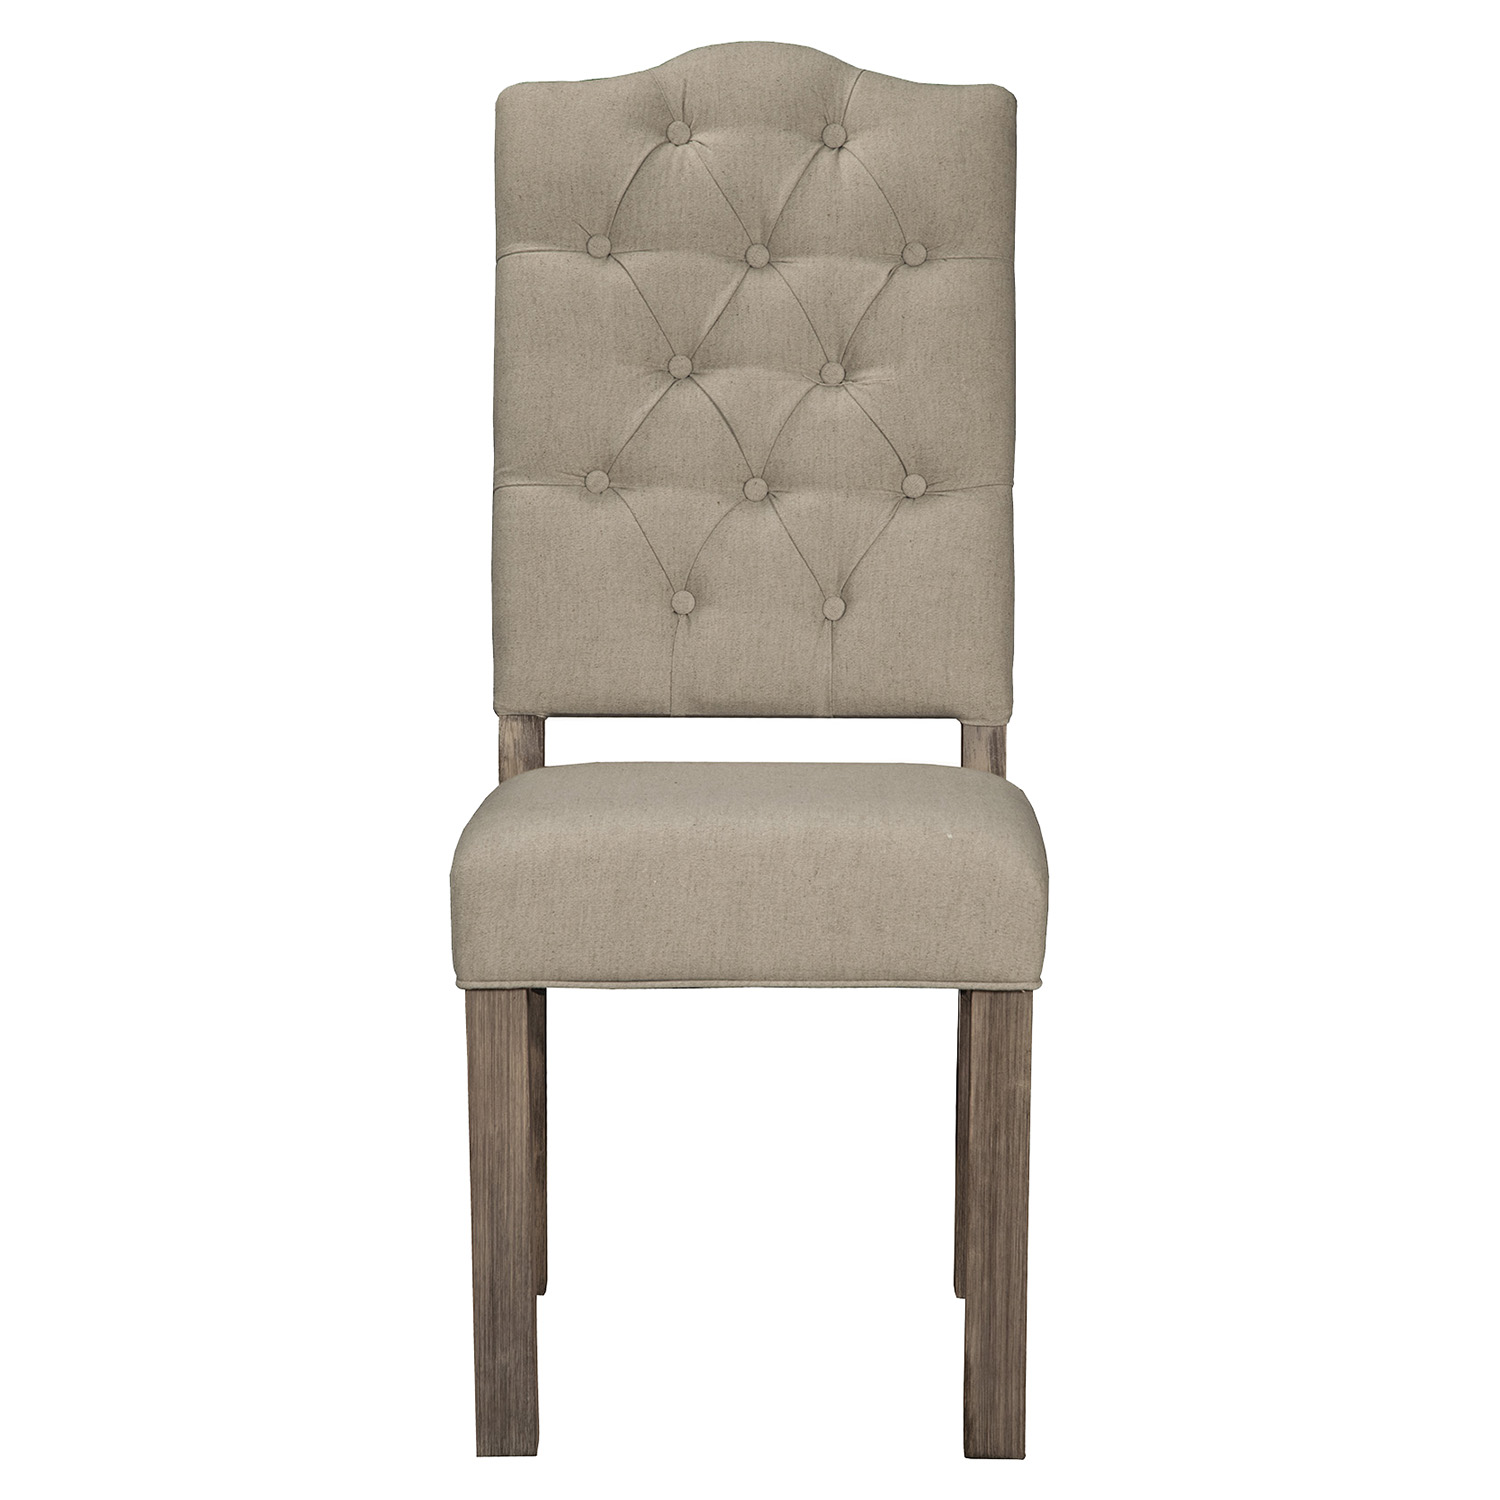 Fiji Tufted Upholstered Side Chair - Weathered Gray